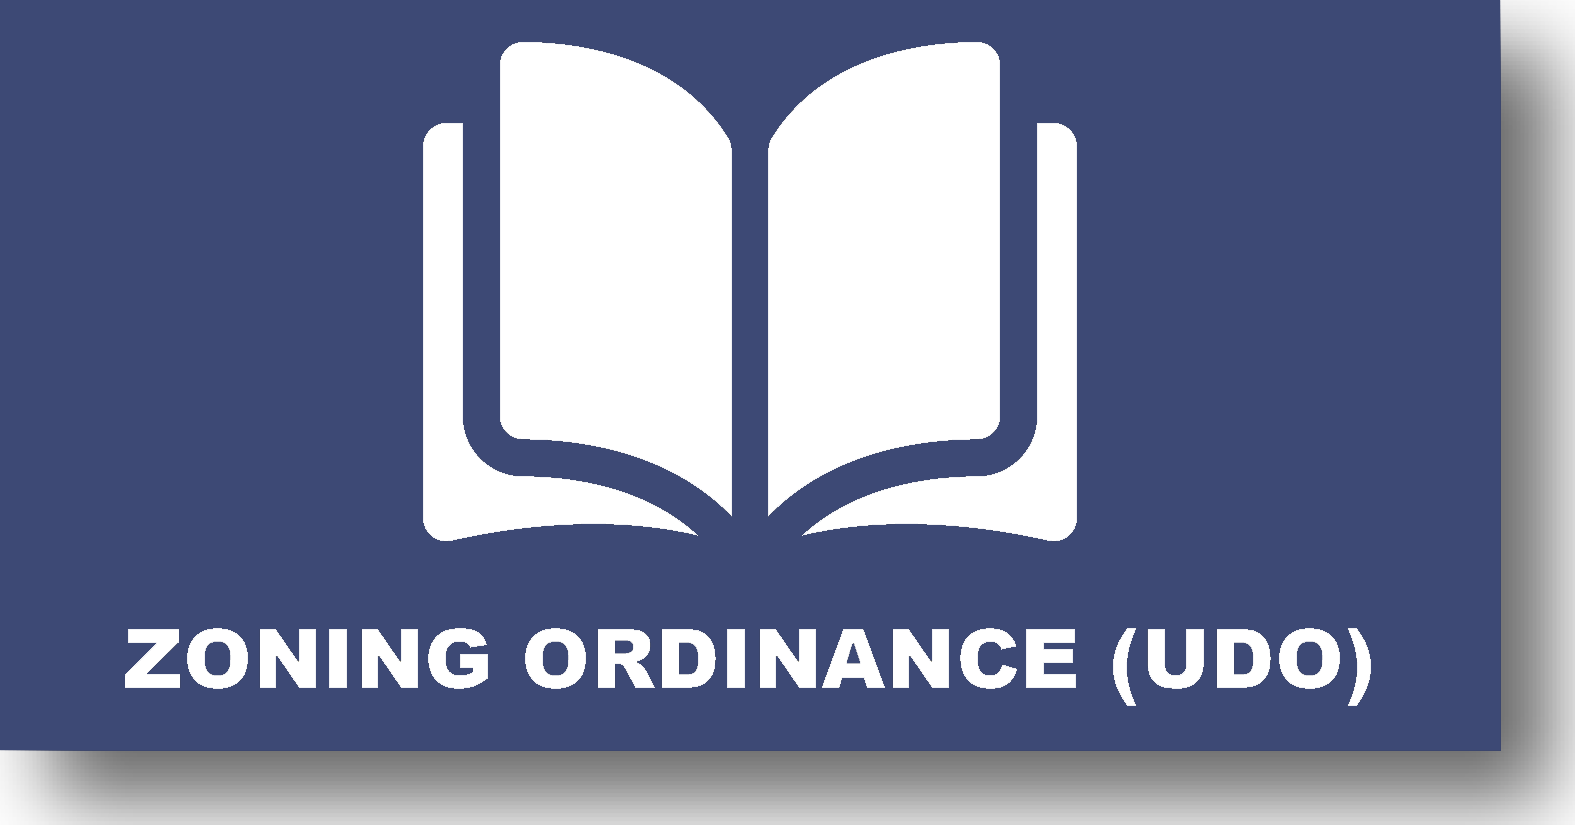 Zoning Ordinance (UDO)